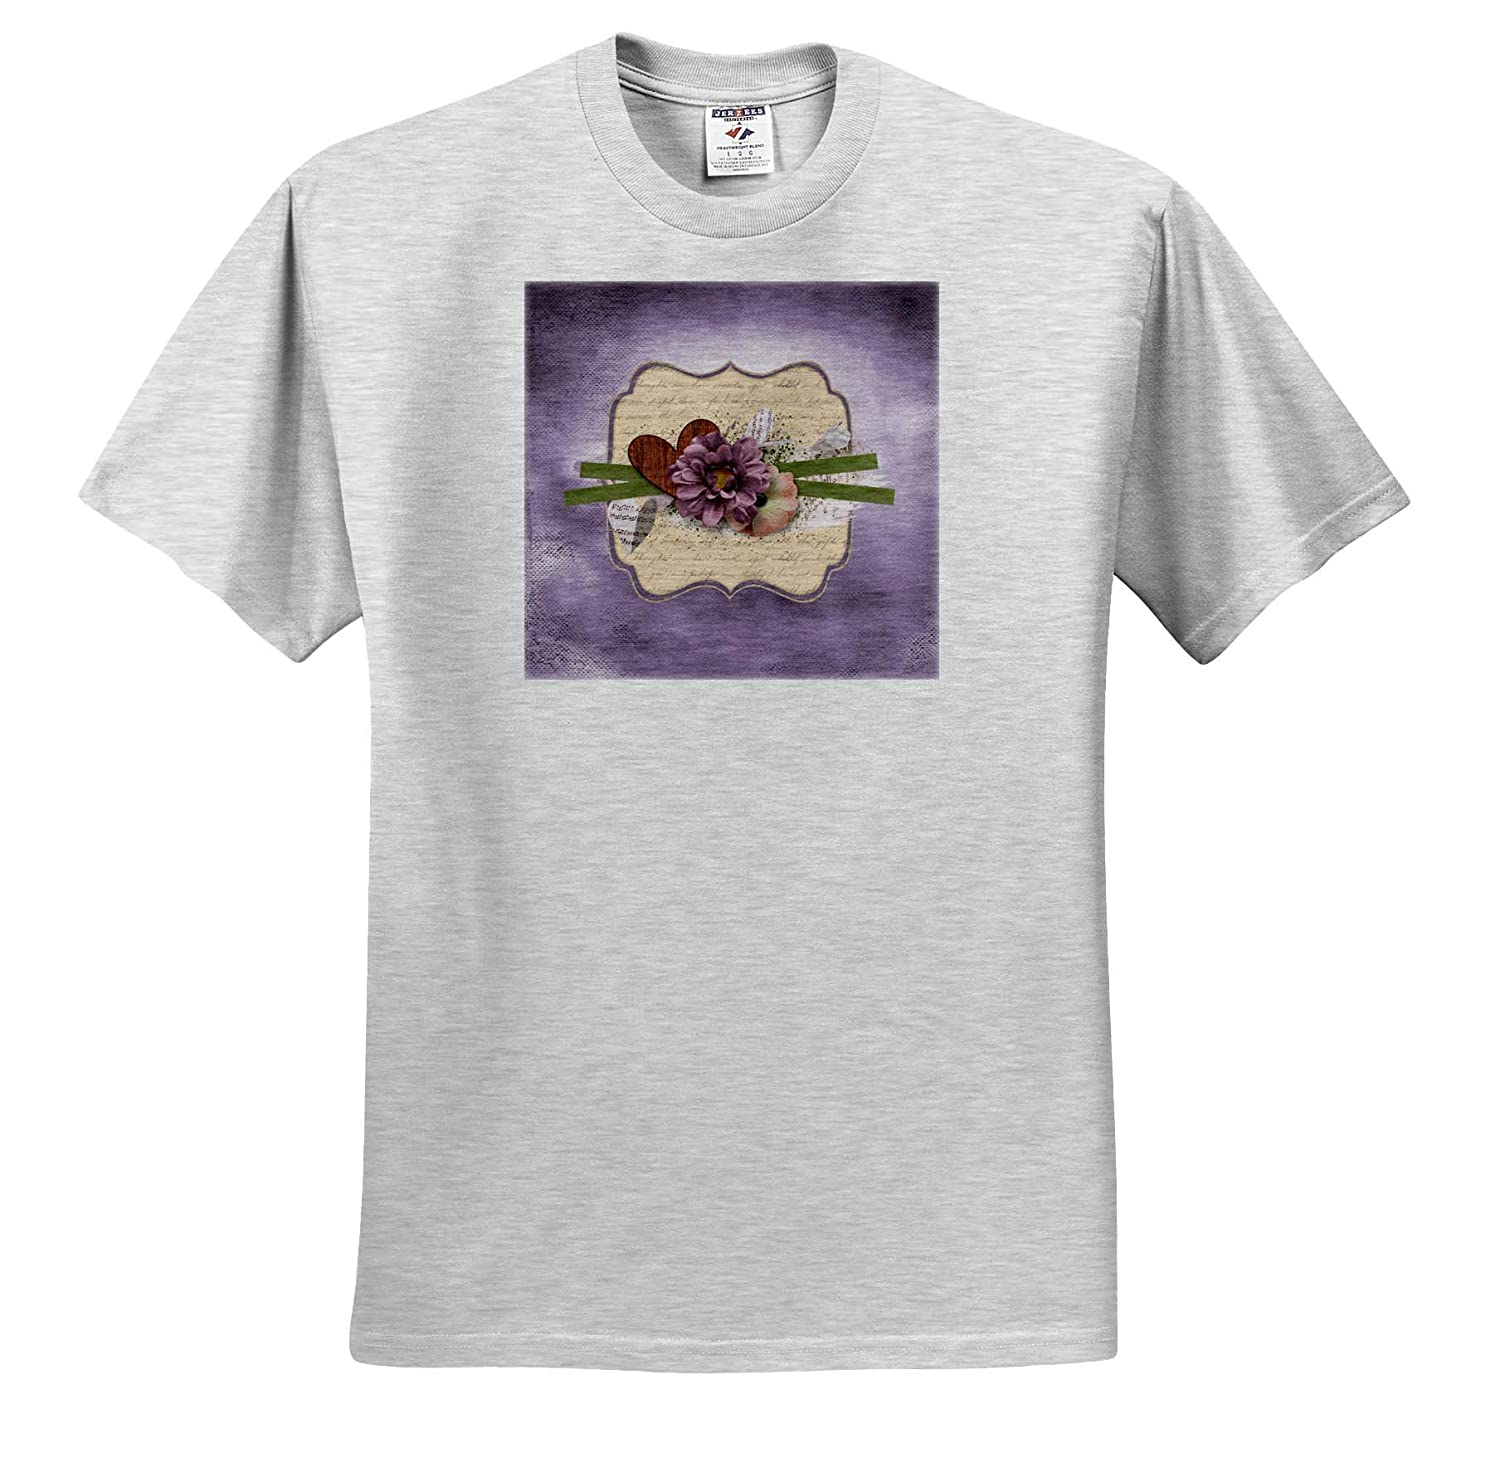 Purple and Yellow Flowers on Tag Ribbon T-Shirts Image of Wooden Heart 3dRose Beverly Turner Flora Design